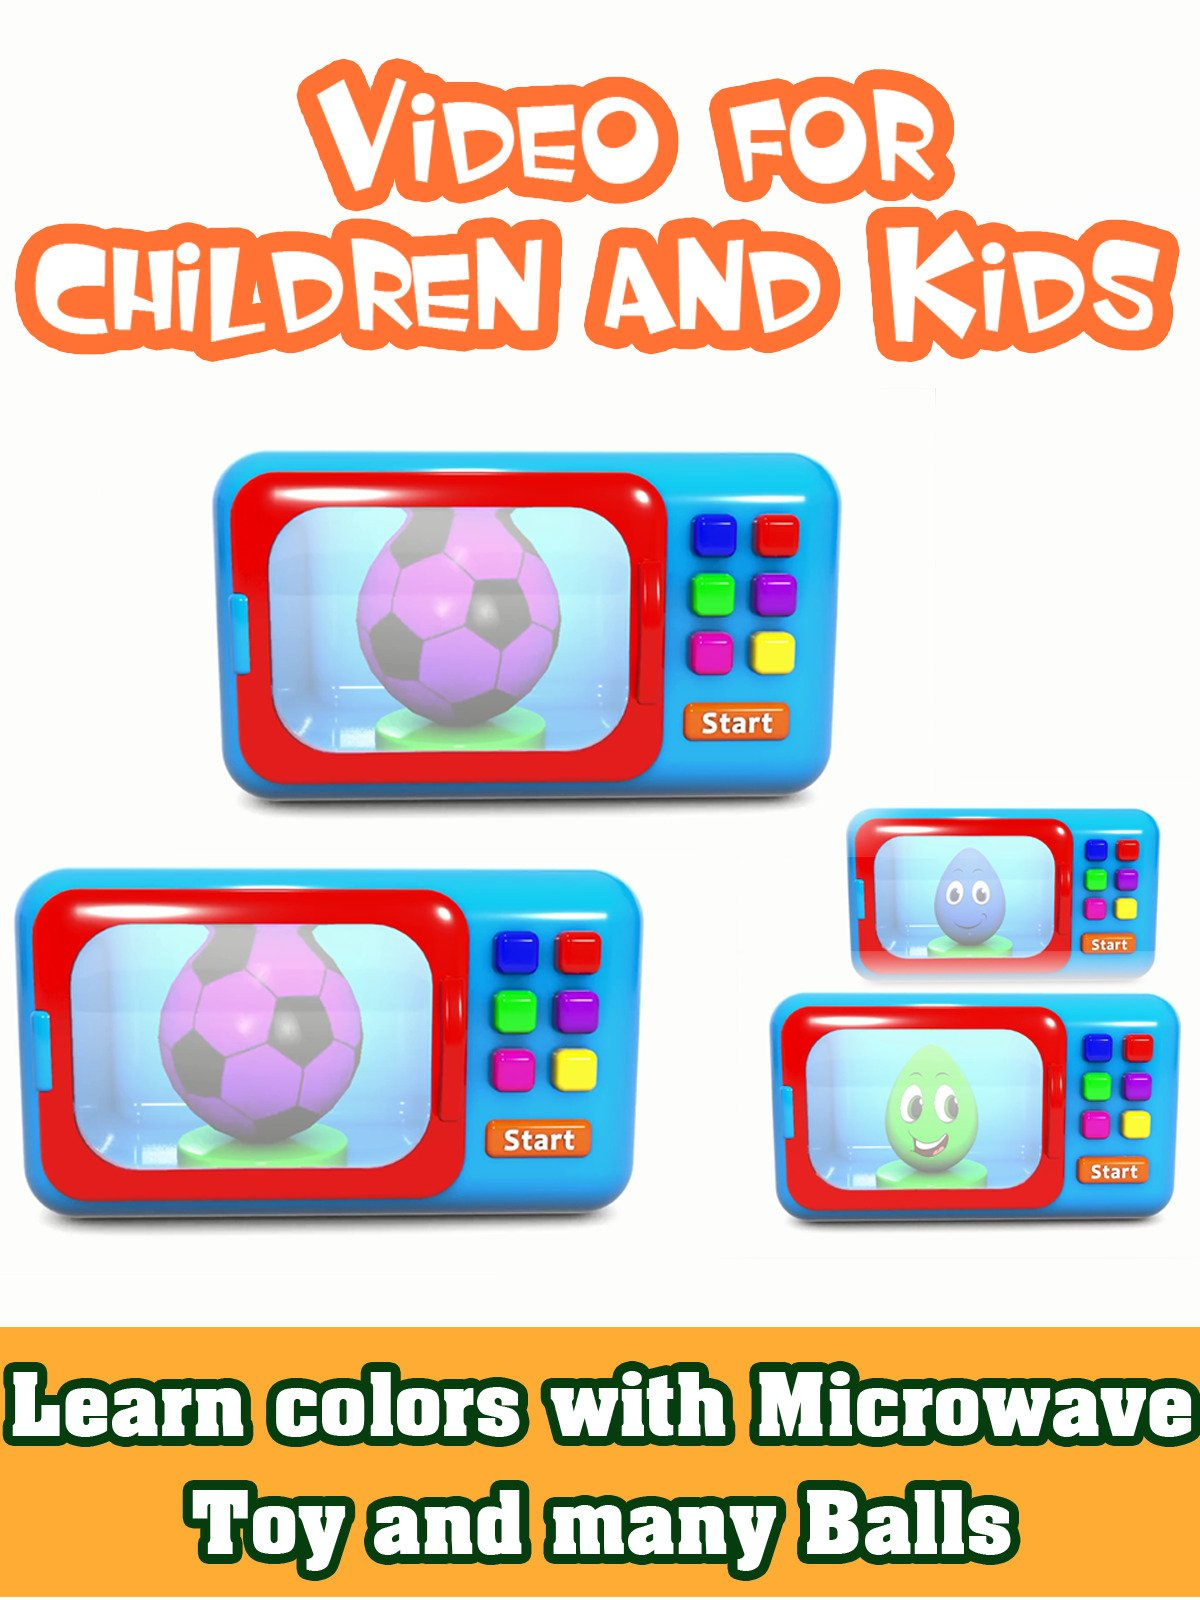 Learn colors with Microwave Toy and many Balls